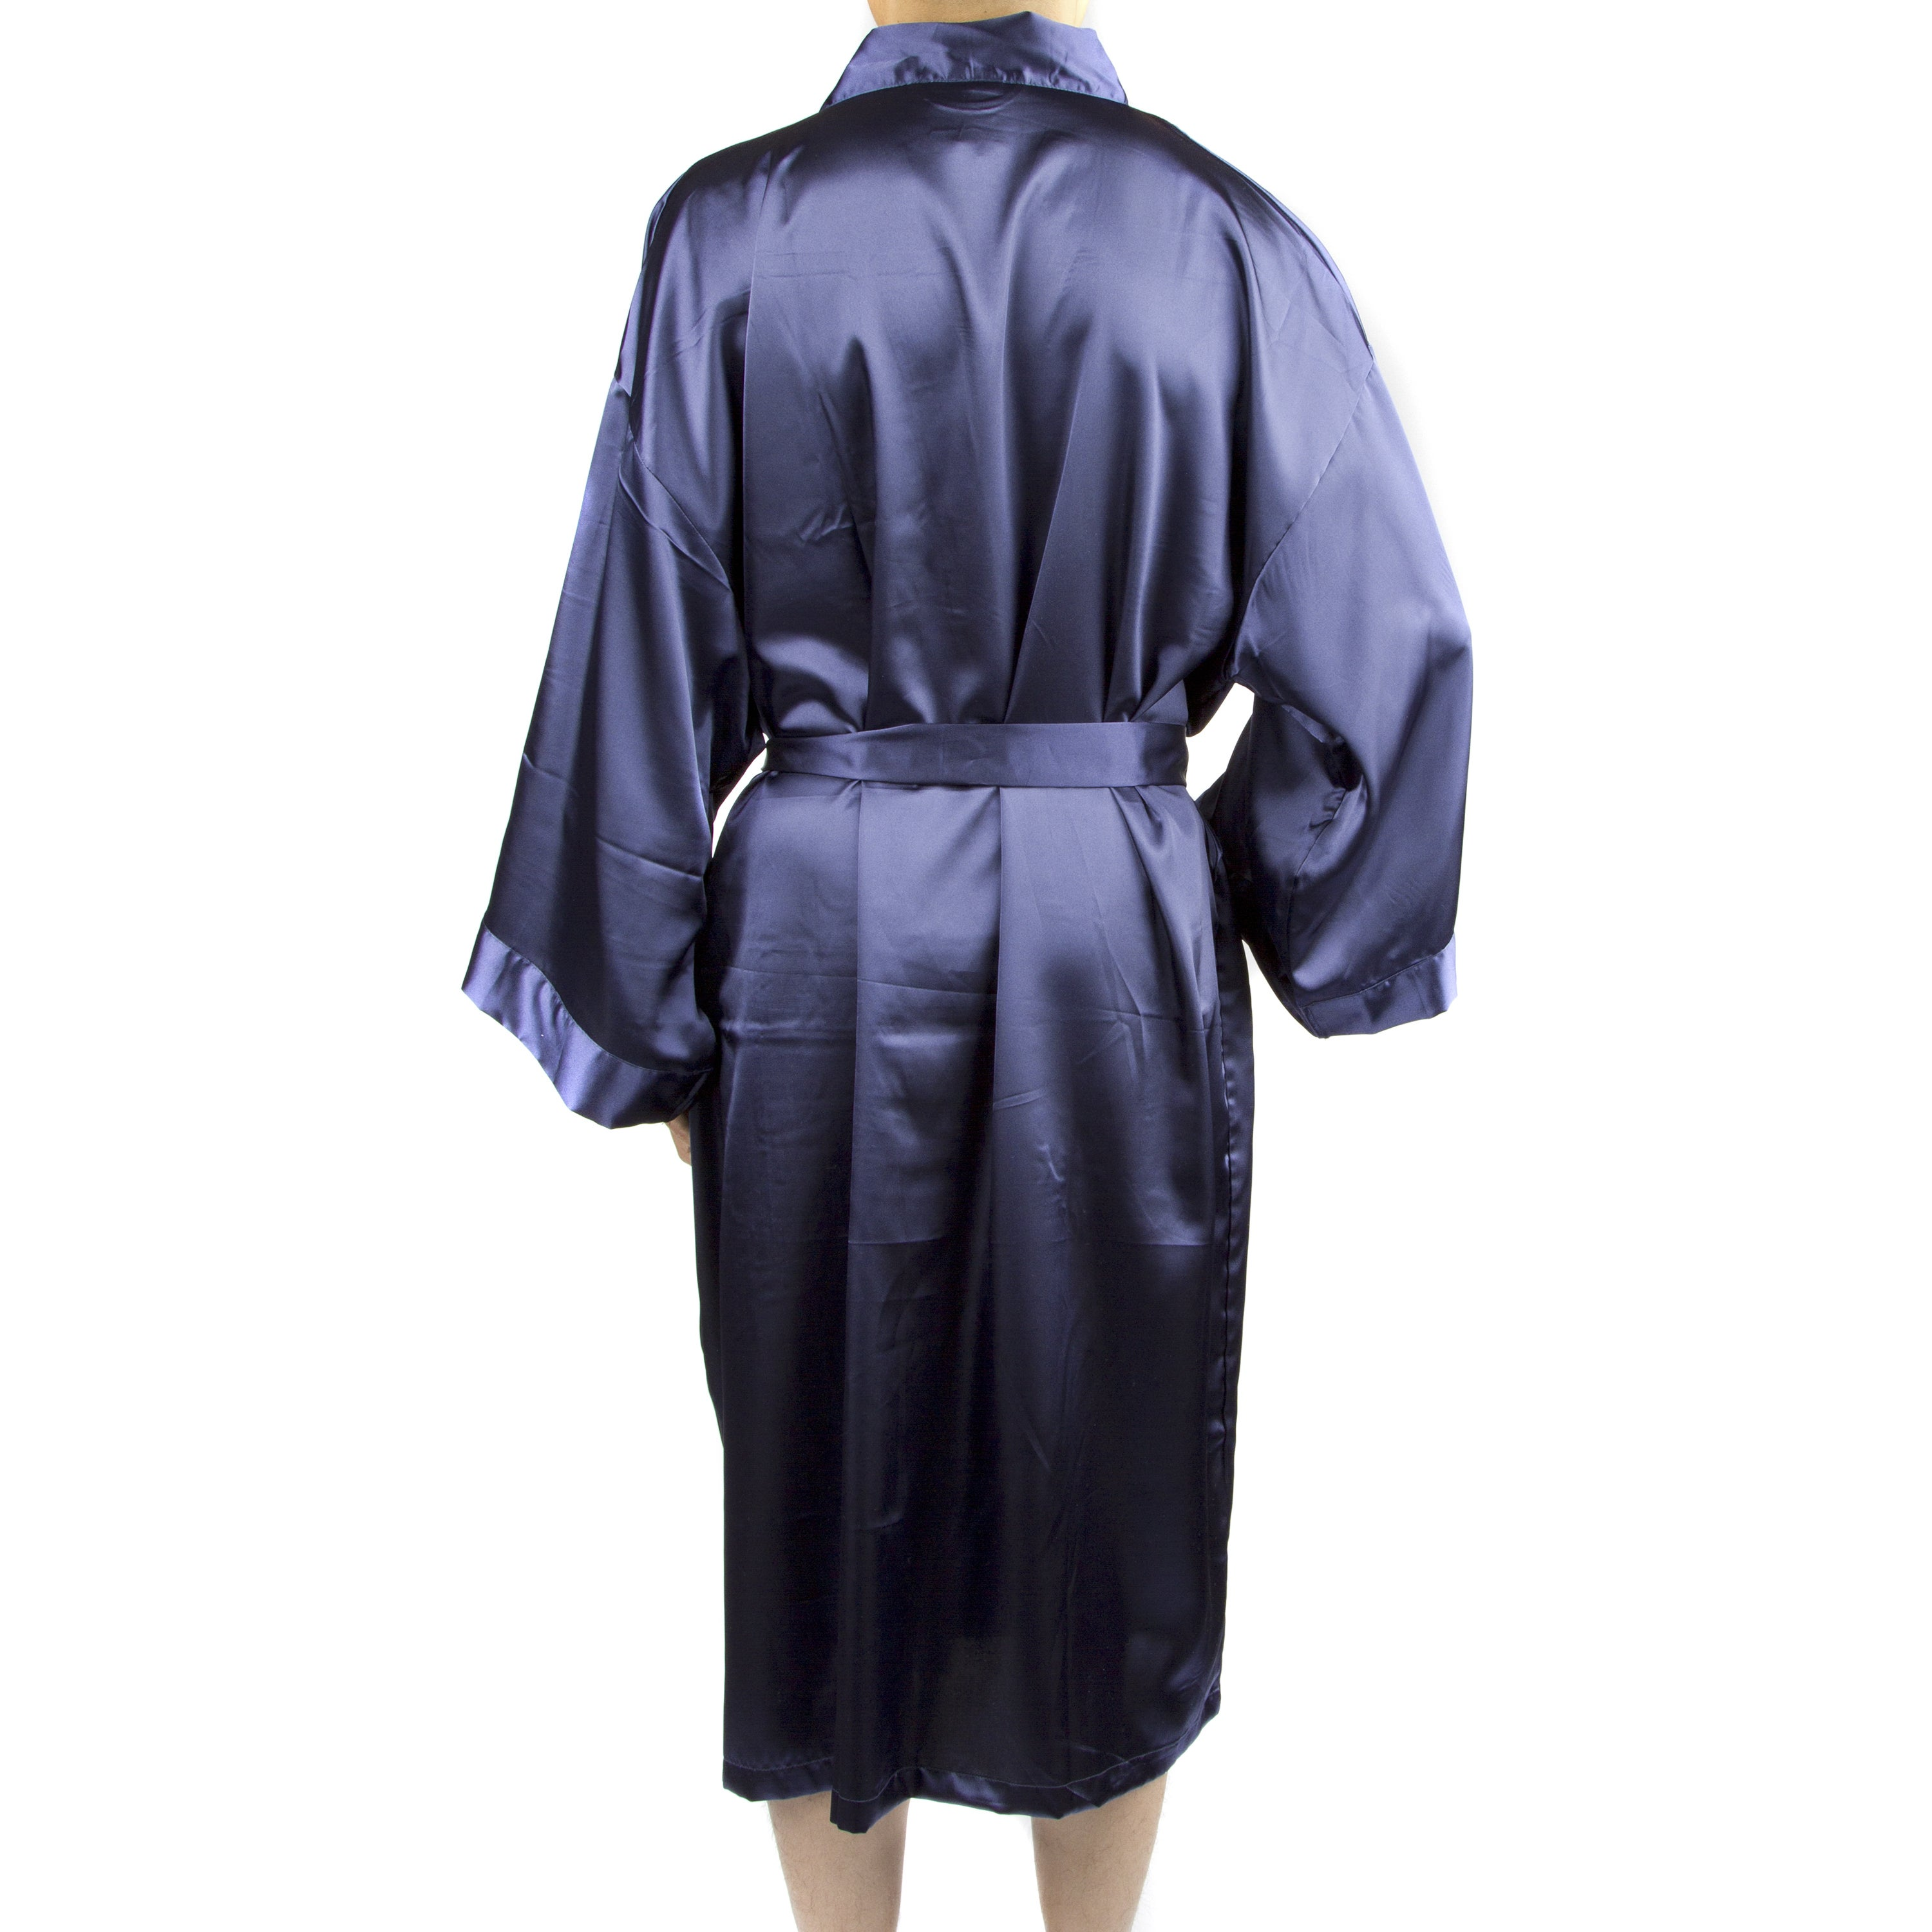 ddf2ed38d4 Details about Leisureland Men s Blue Black Tan Satin Long 48-inch Kimono  Robe